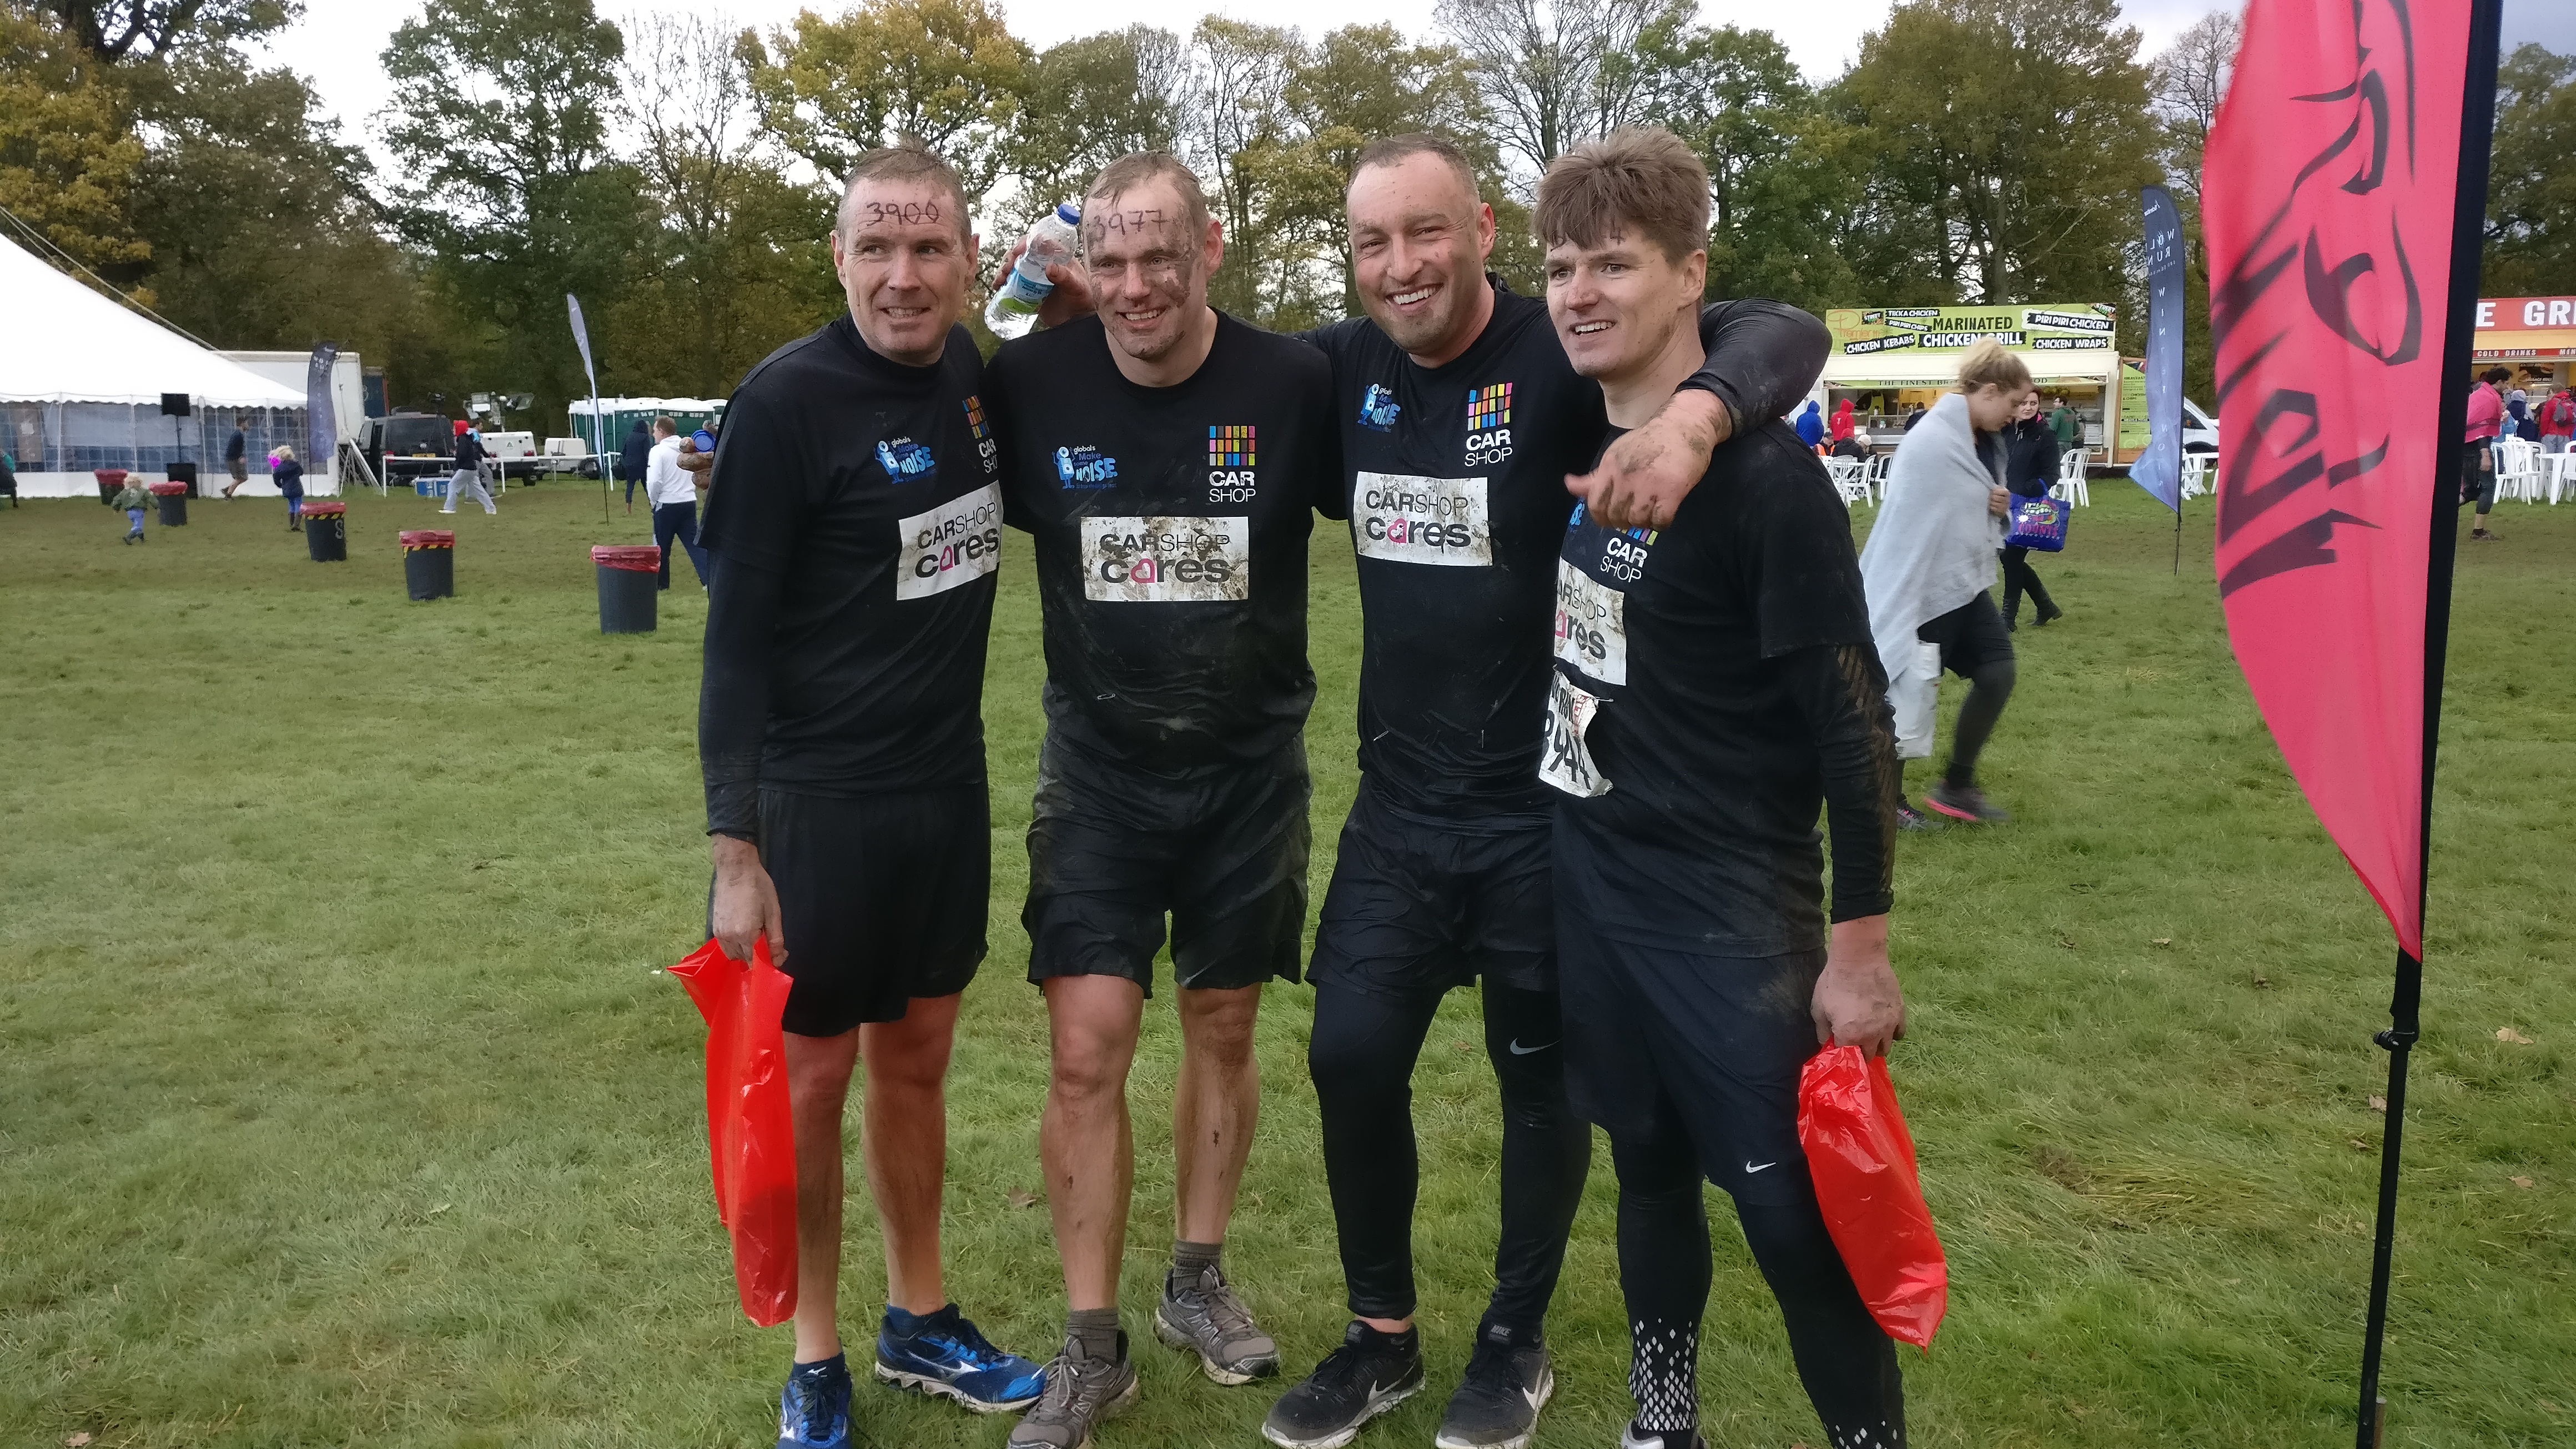 CarShop Executive Team Defeat the Mighty Wolf Run and Raise Over £12,000 for charity